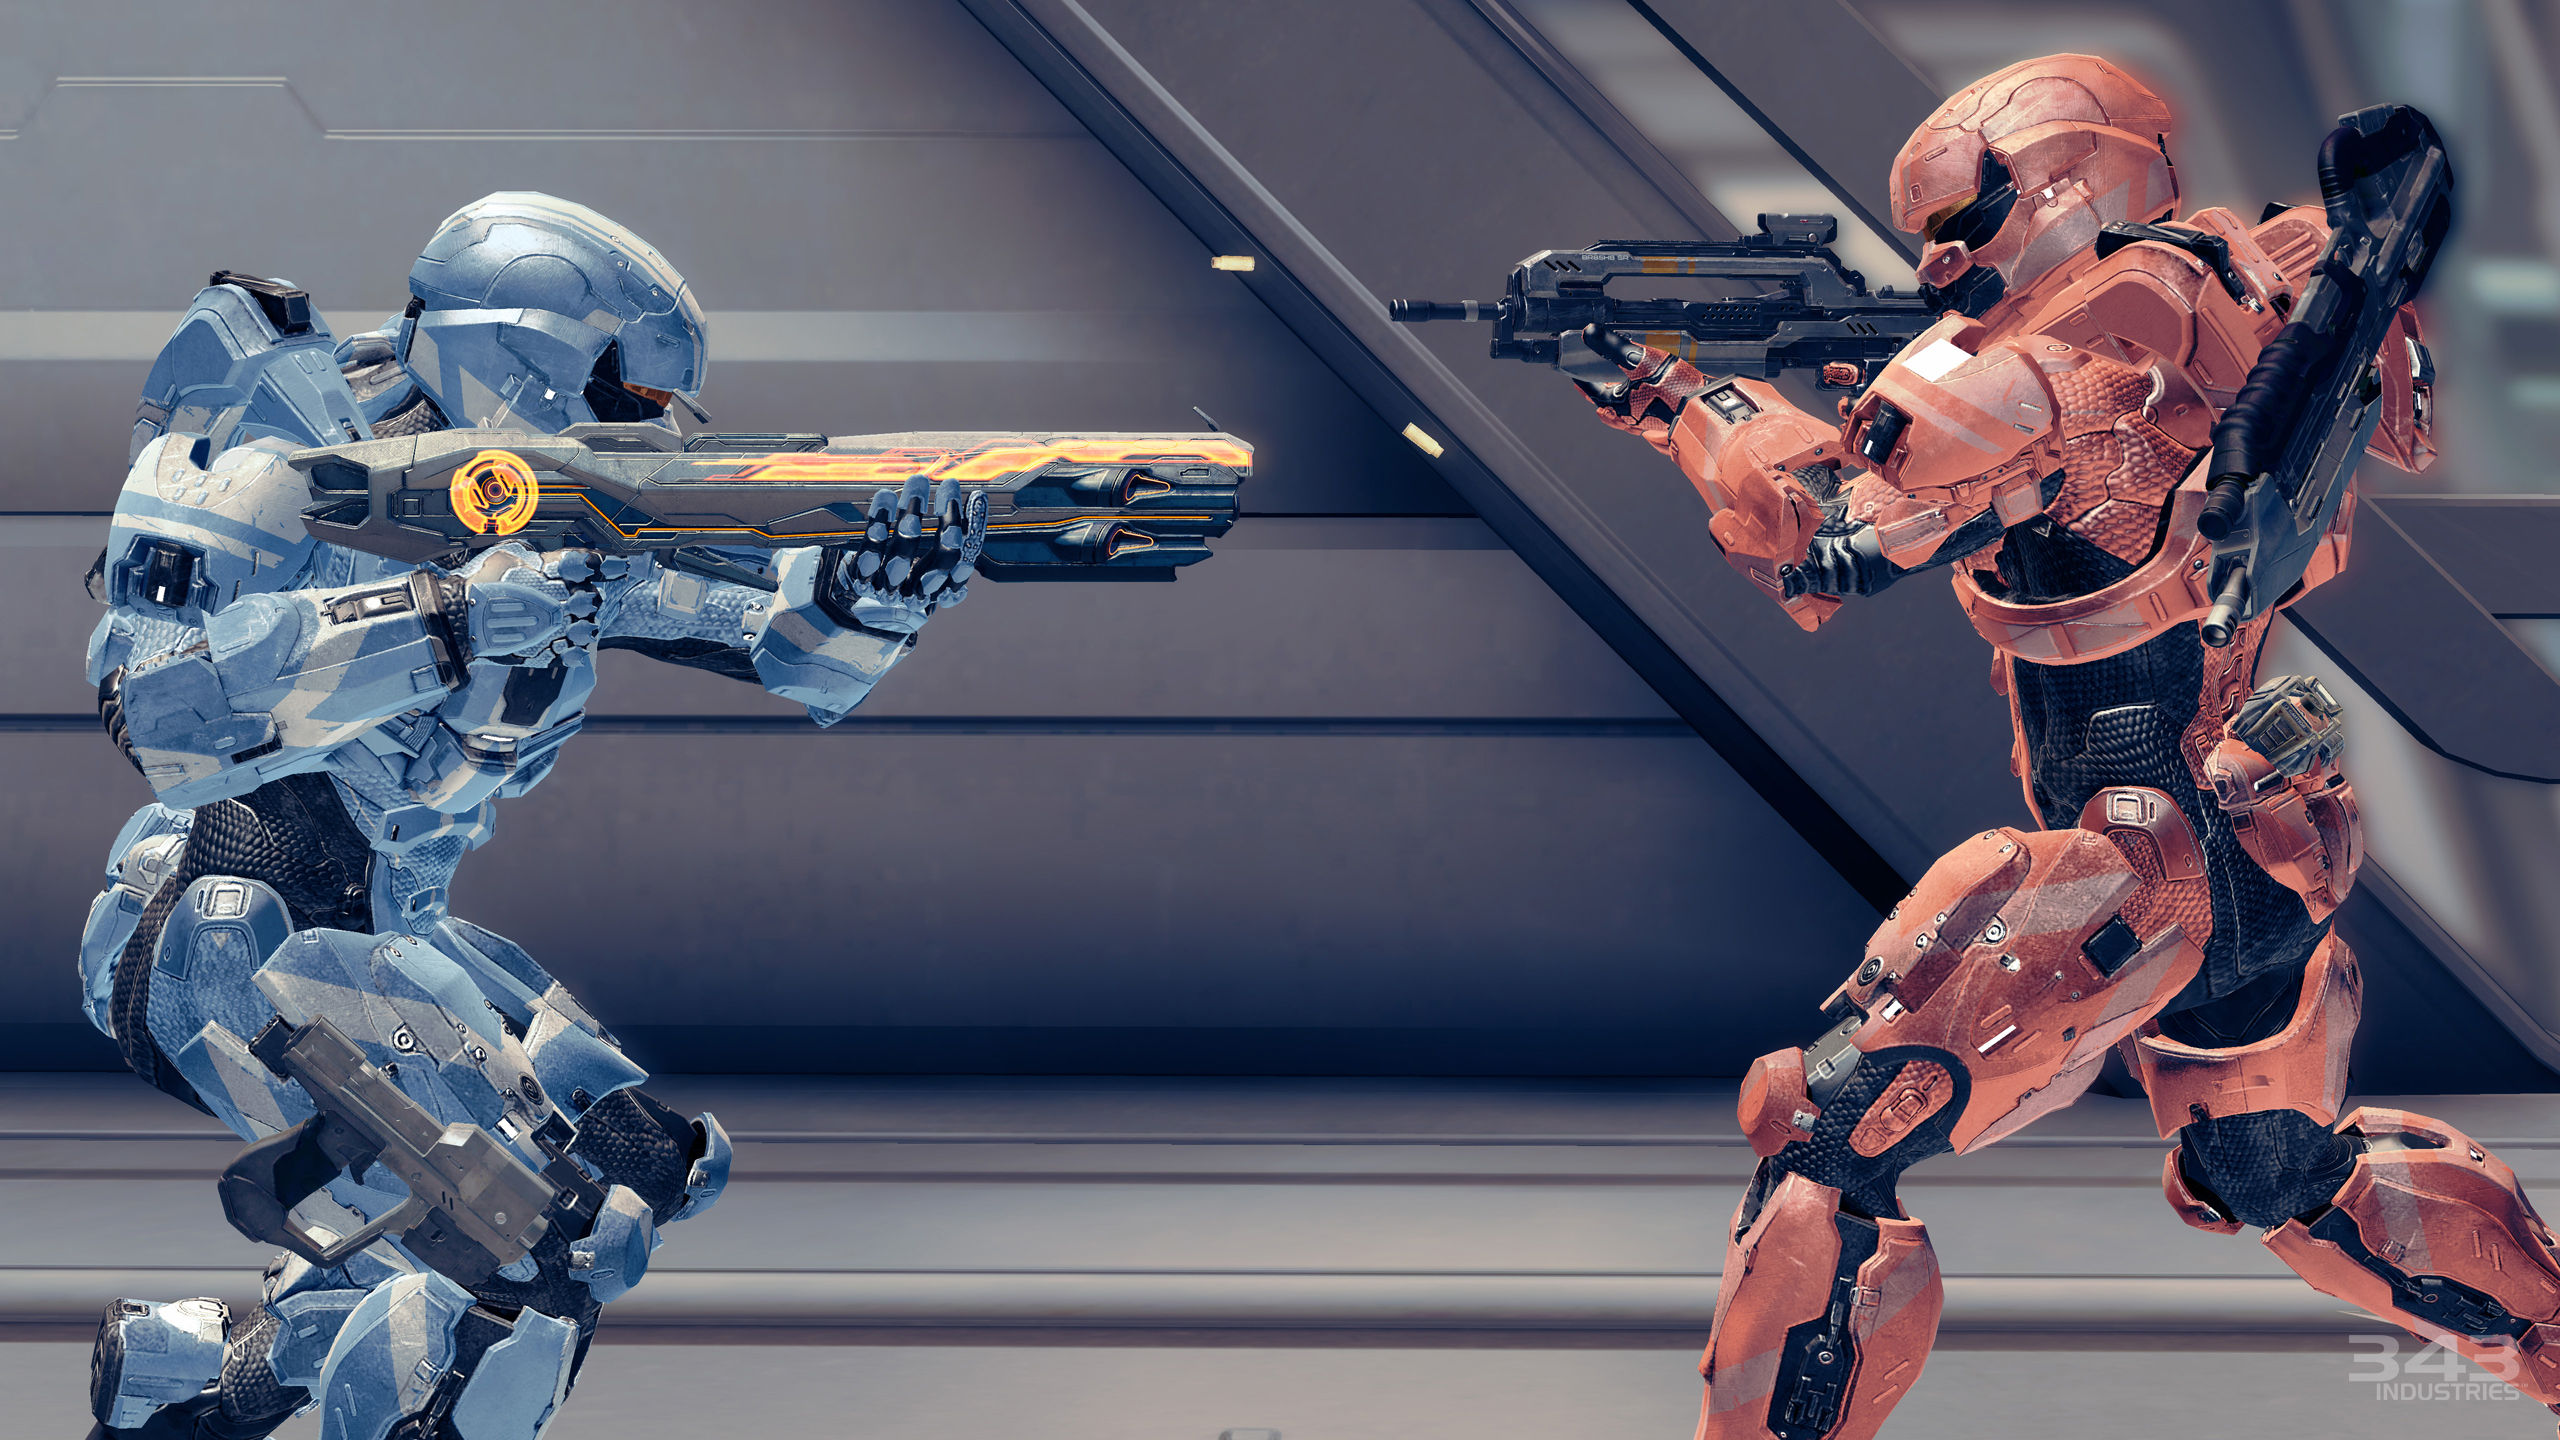 Halo 4 Multiplayer Red Vs Blue Explained With Gameplay Video